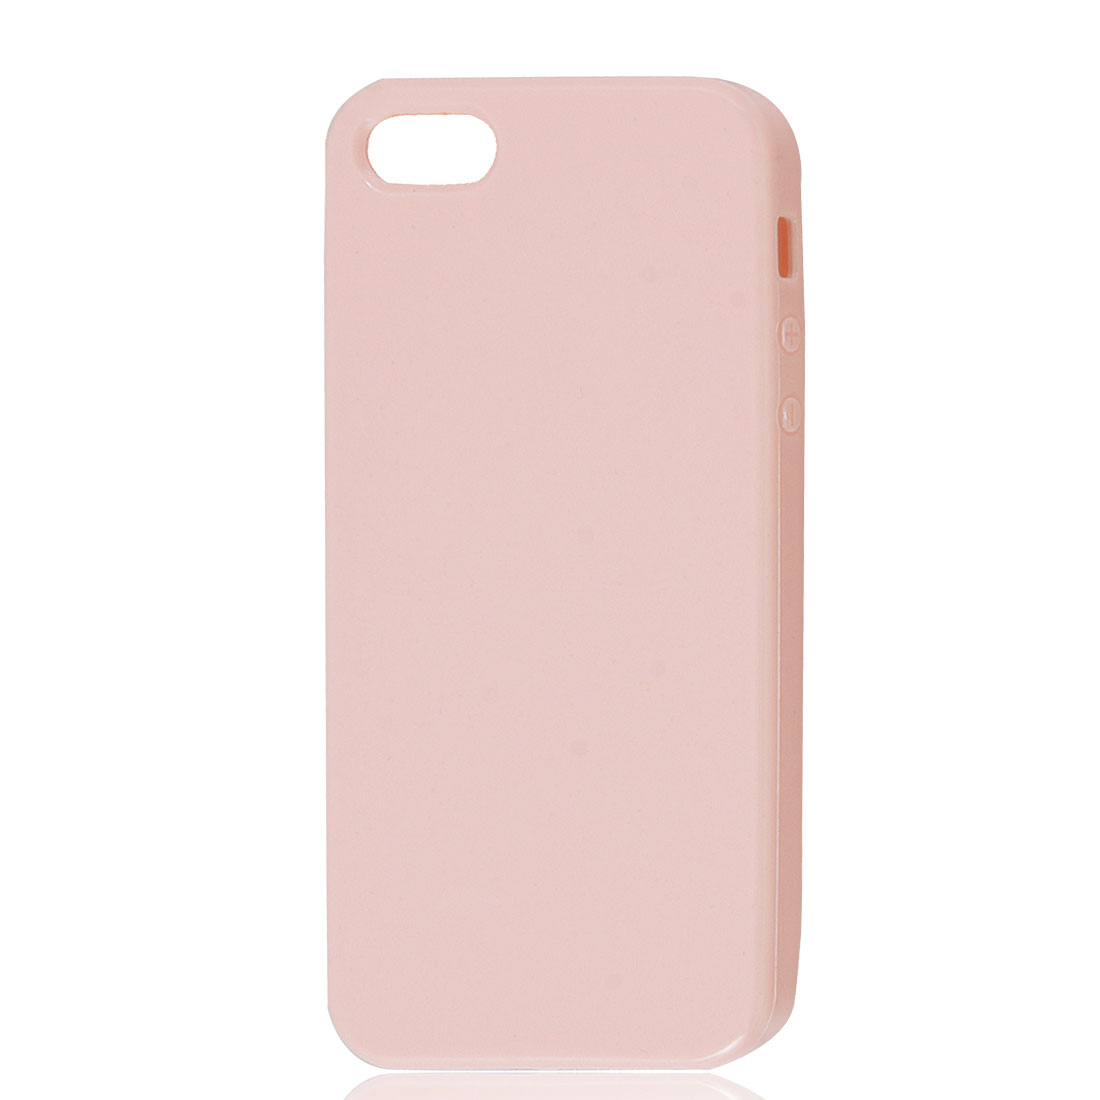 Light Pink Soft Plastic TPU Protective Case Cover Skin for Apple iPhone 5 5G